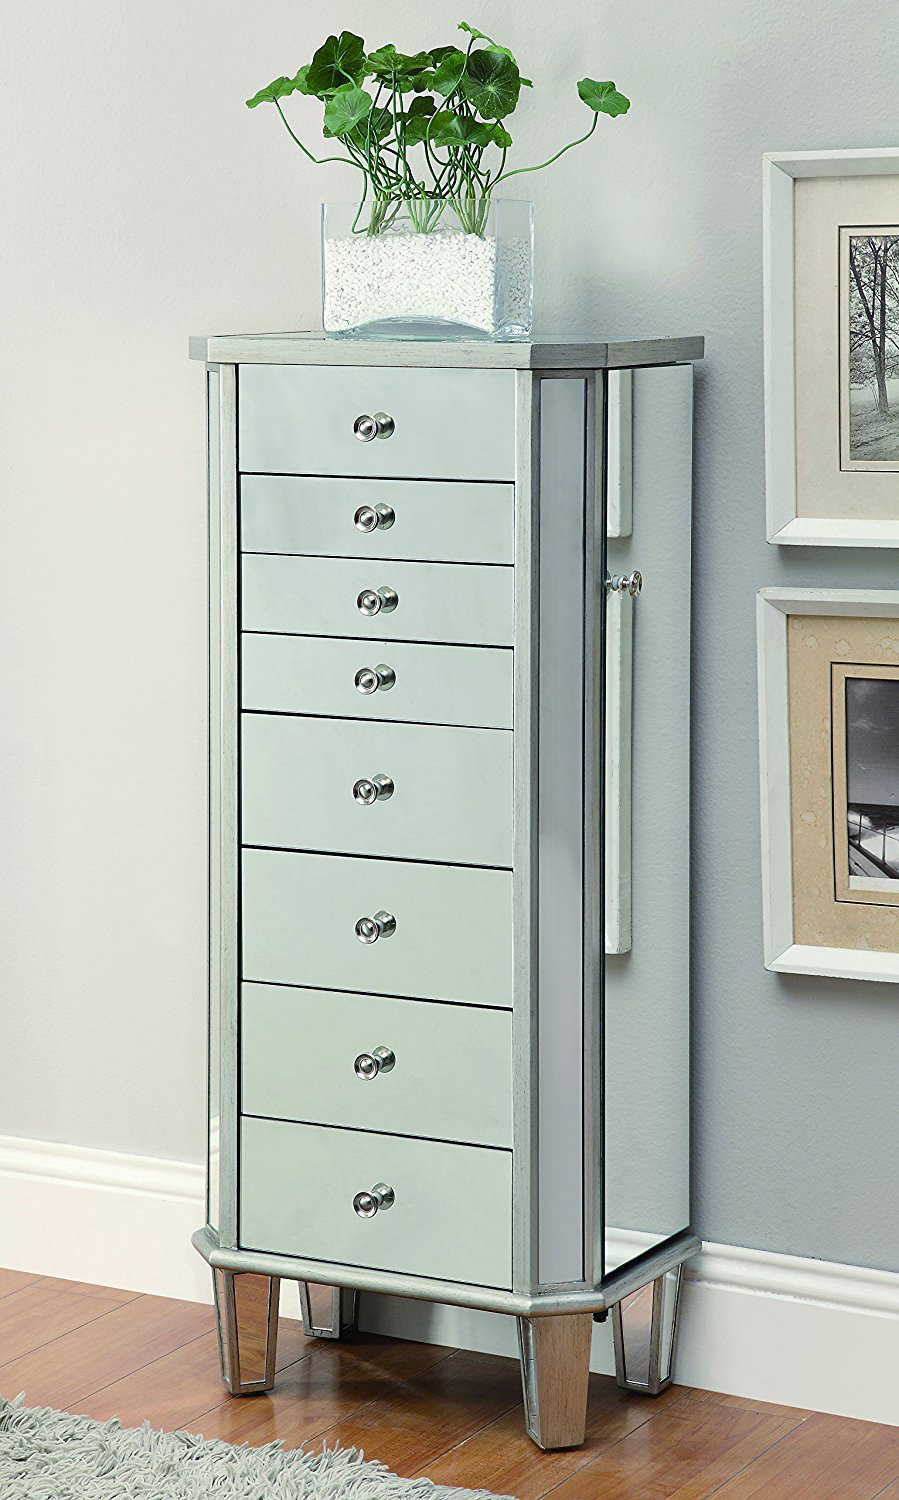 Elegant Wall Standing Mirrored Cabinet Style Jewelry Armoire